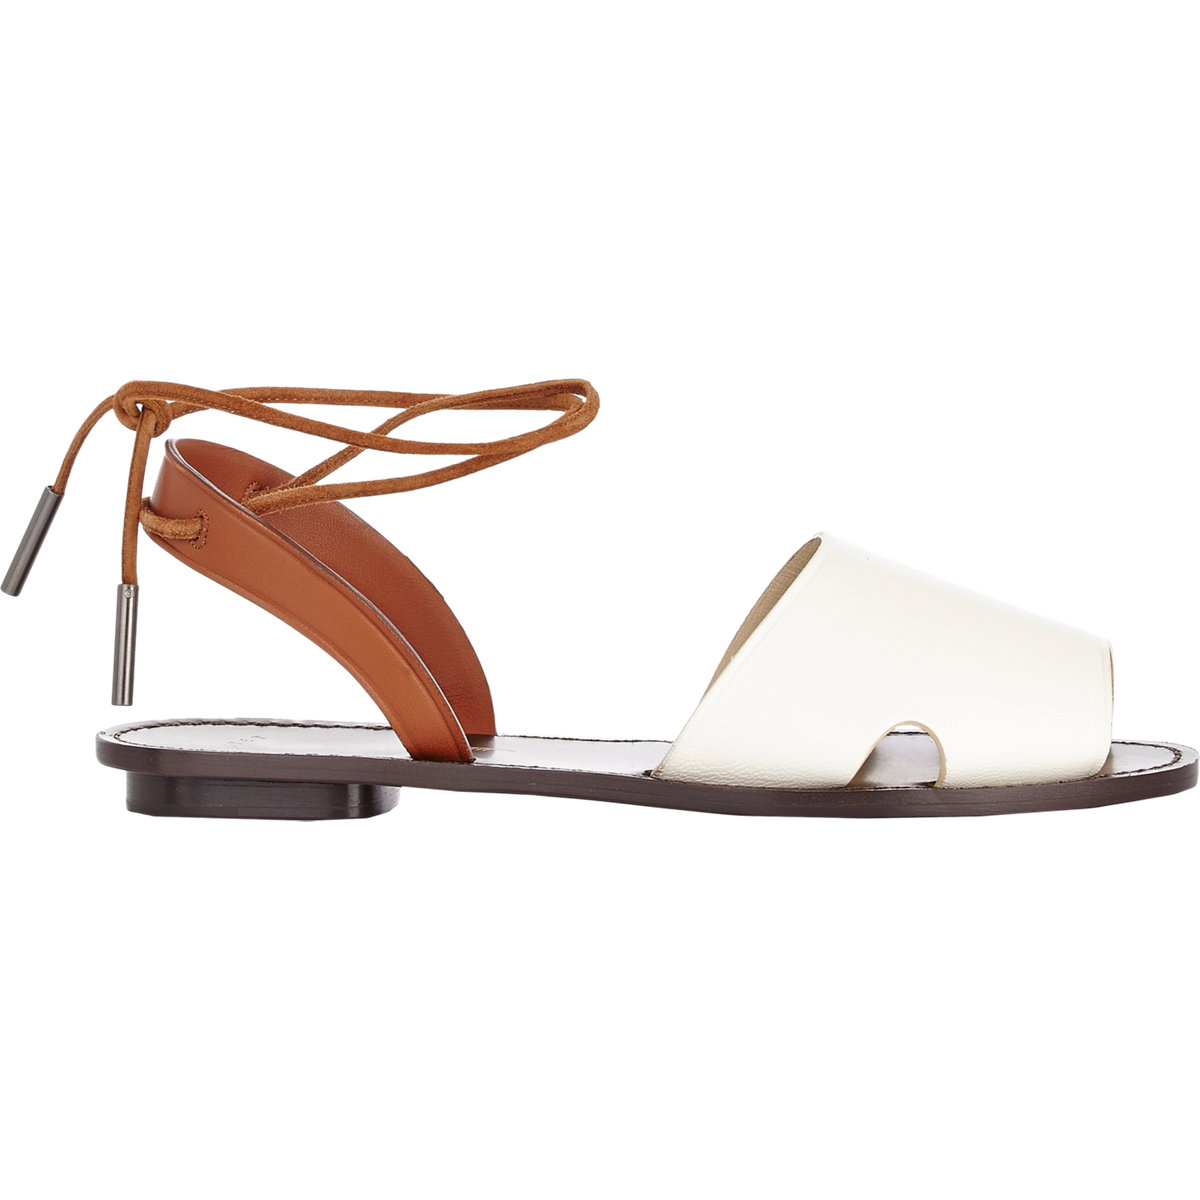 1a016e00433 Maiyet Ankle-tie Flat Sandals in White - Lyst